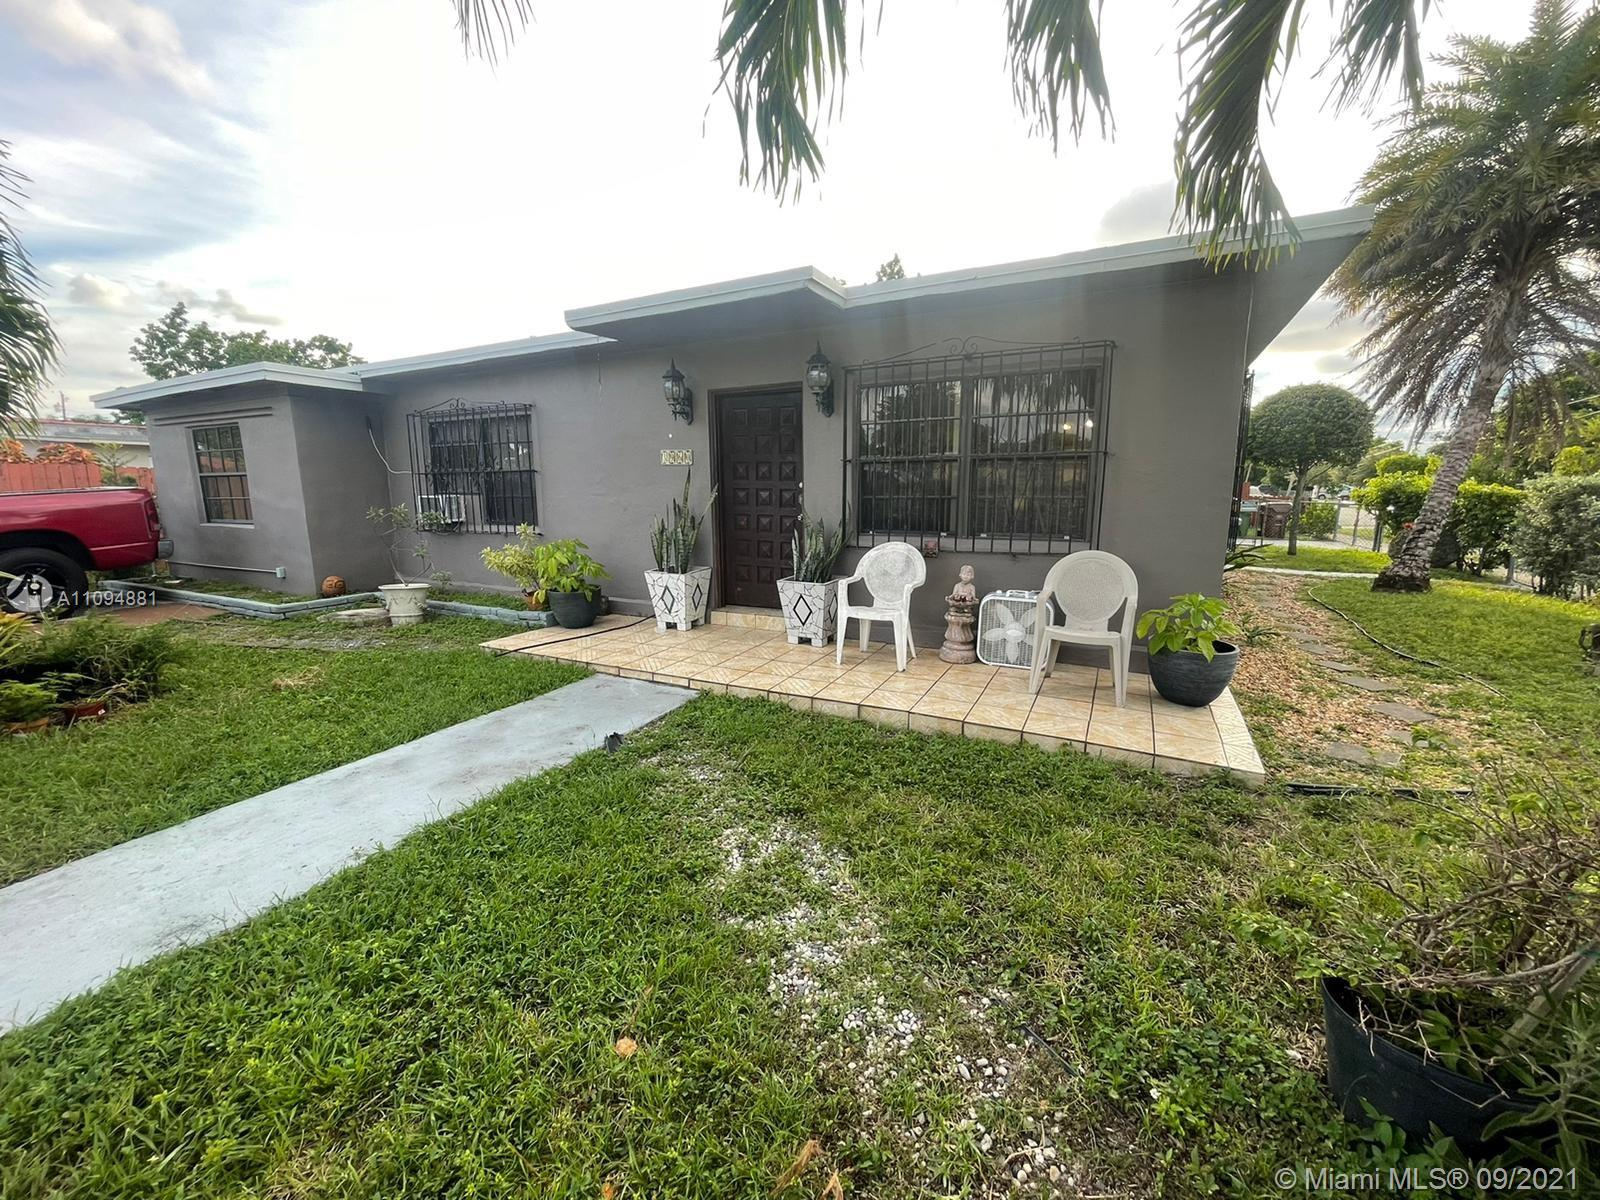 Single Family Home,For Sale,3960 W 1st Ave, Hialeah, Florida 33012,Brickell,realty,broker,condos near me